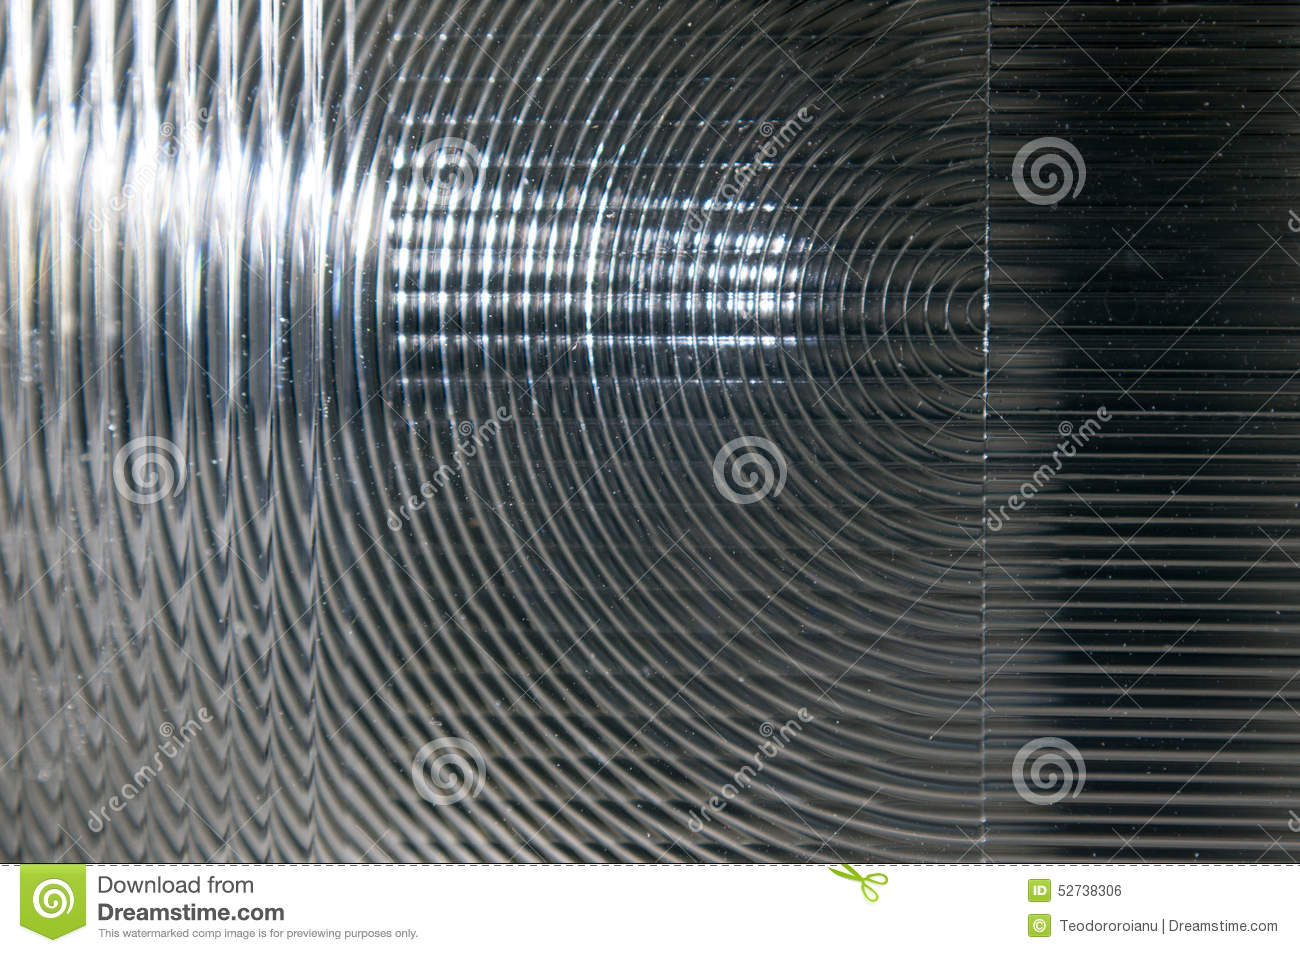 Light diffuser panel stock photo  Image of light, forms - 52738306